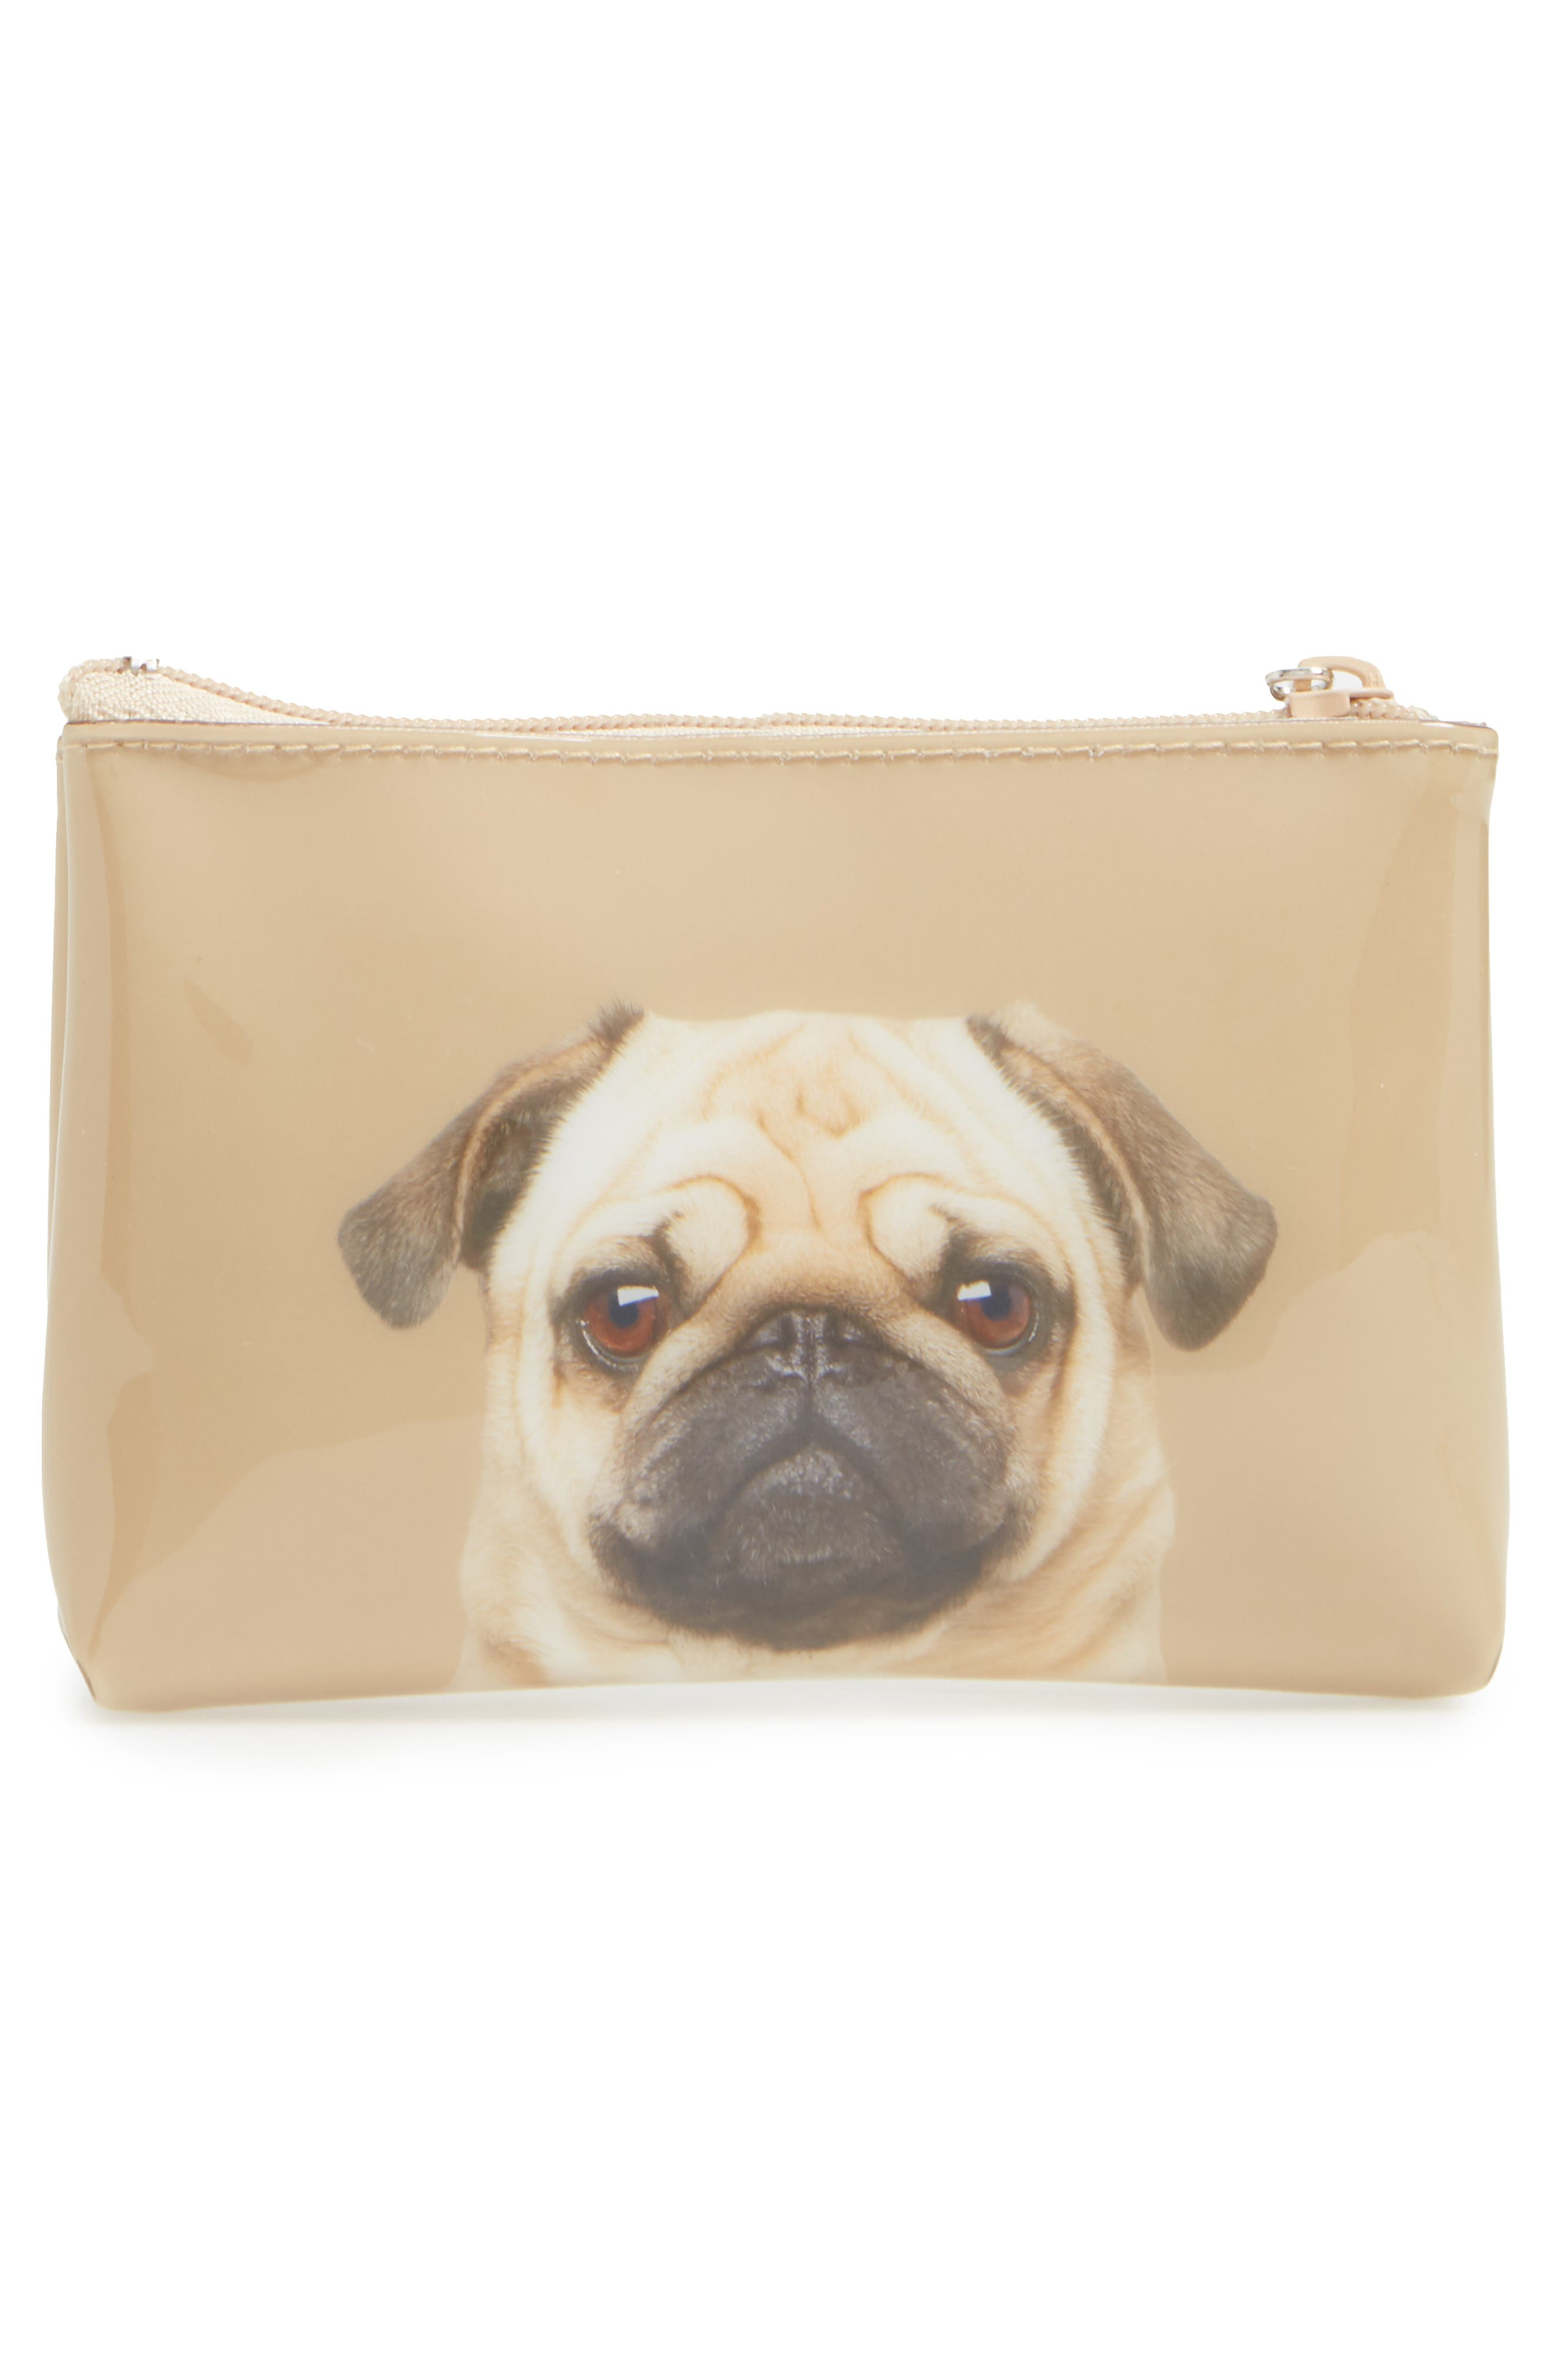 Caramel Pug Small Zip Pouch,                             Alternate thumbnail 2, color,                             200